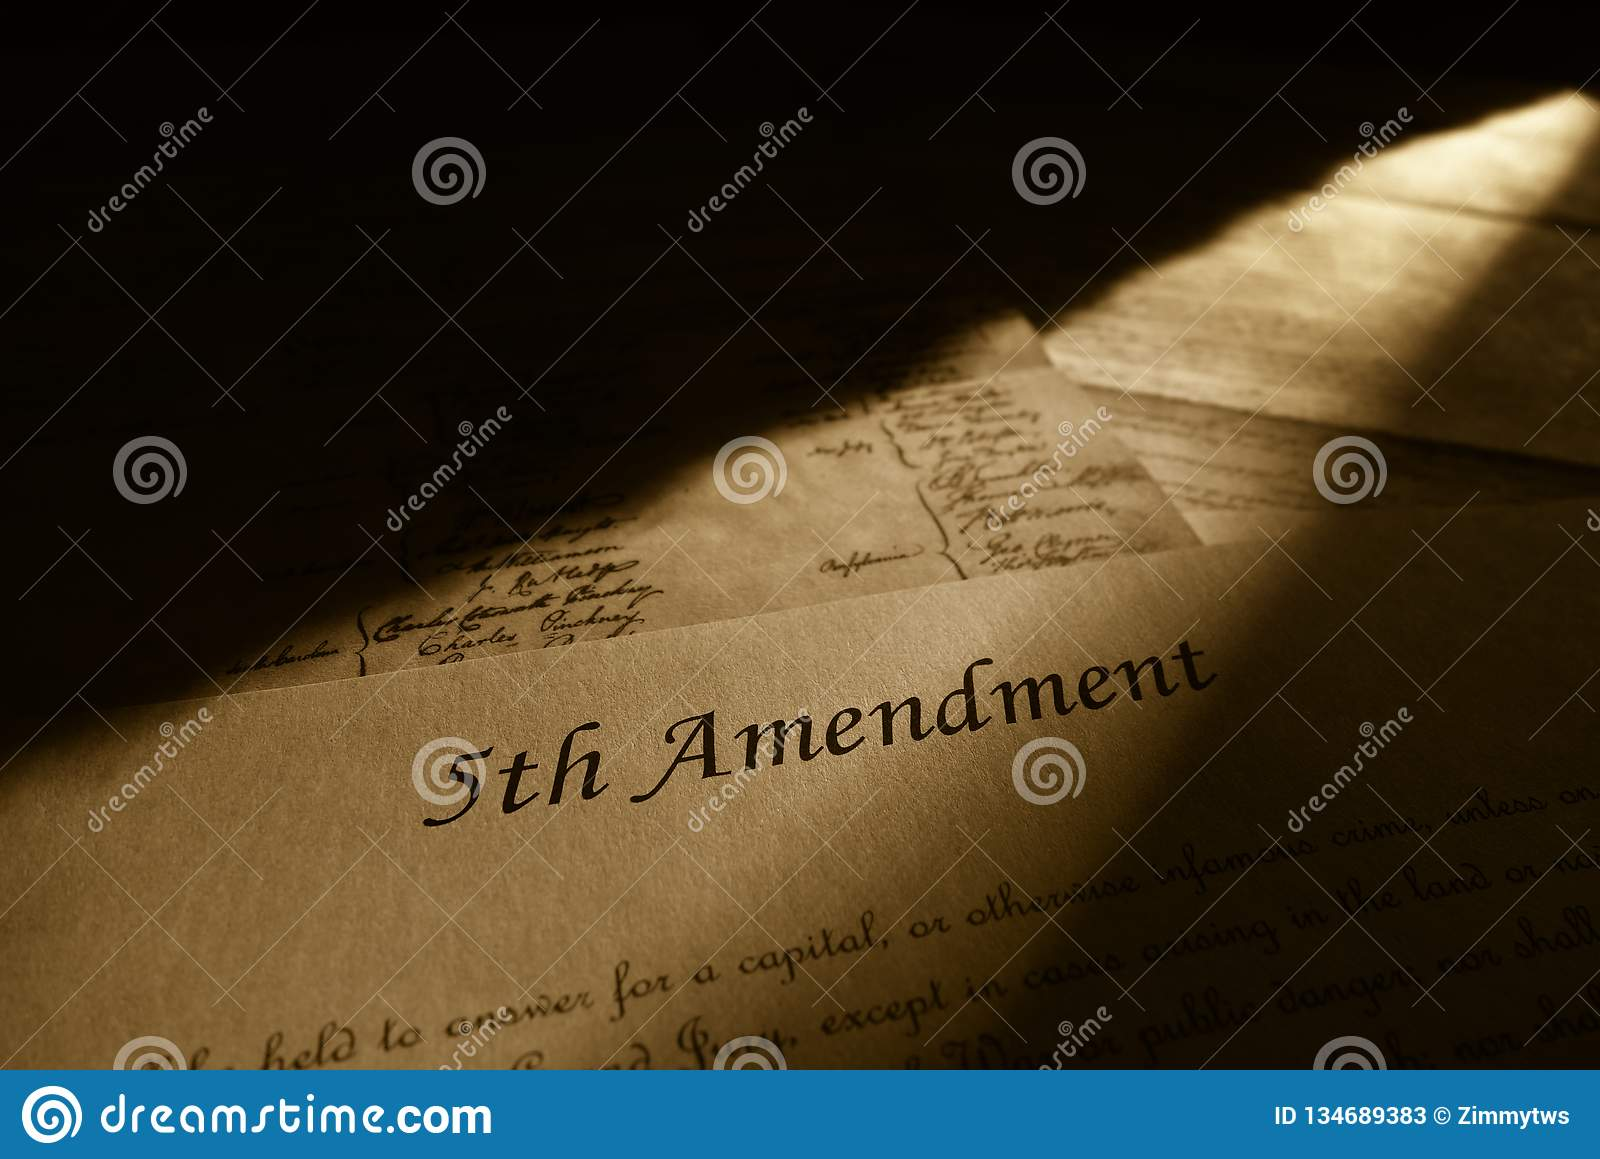 Closeup Of Text From The Fifth Amendment Of The Us Cons Ution